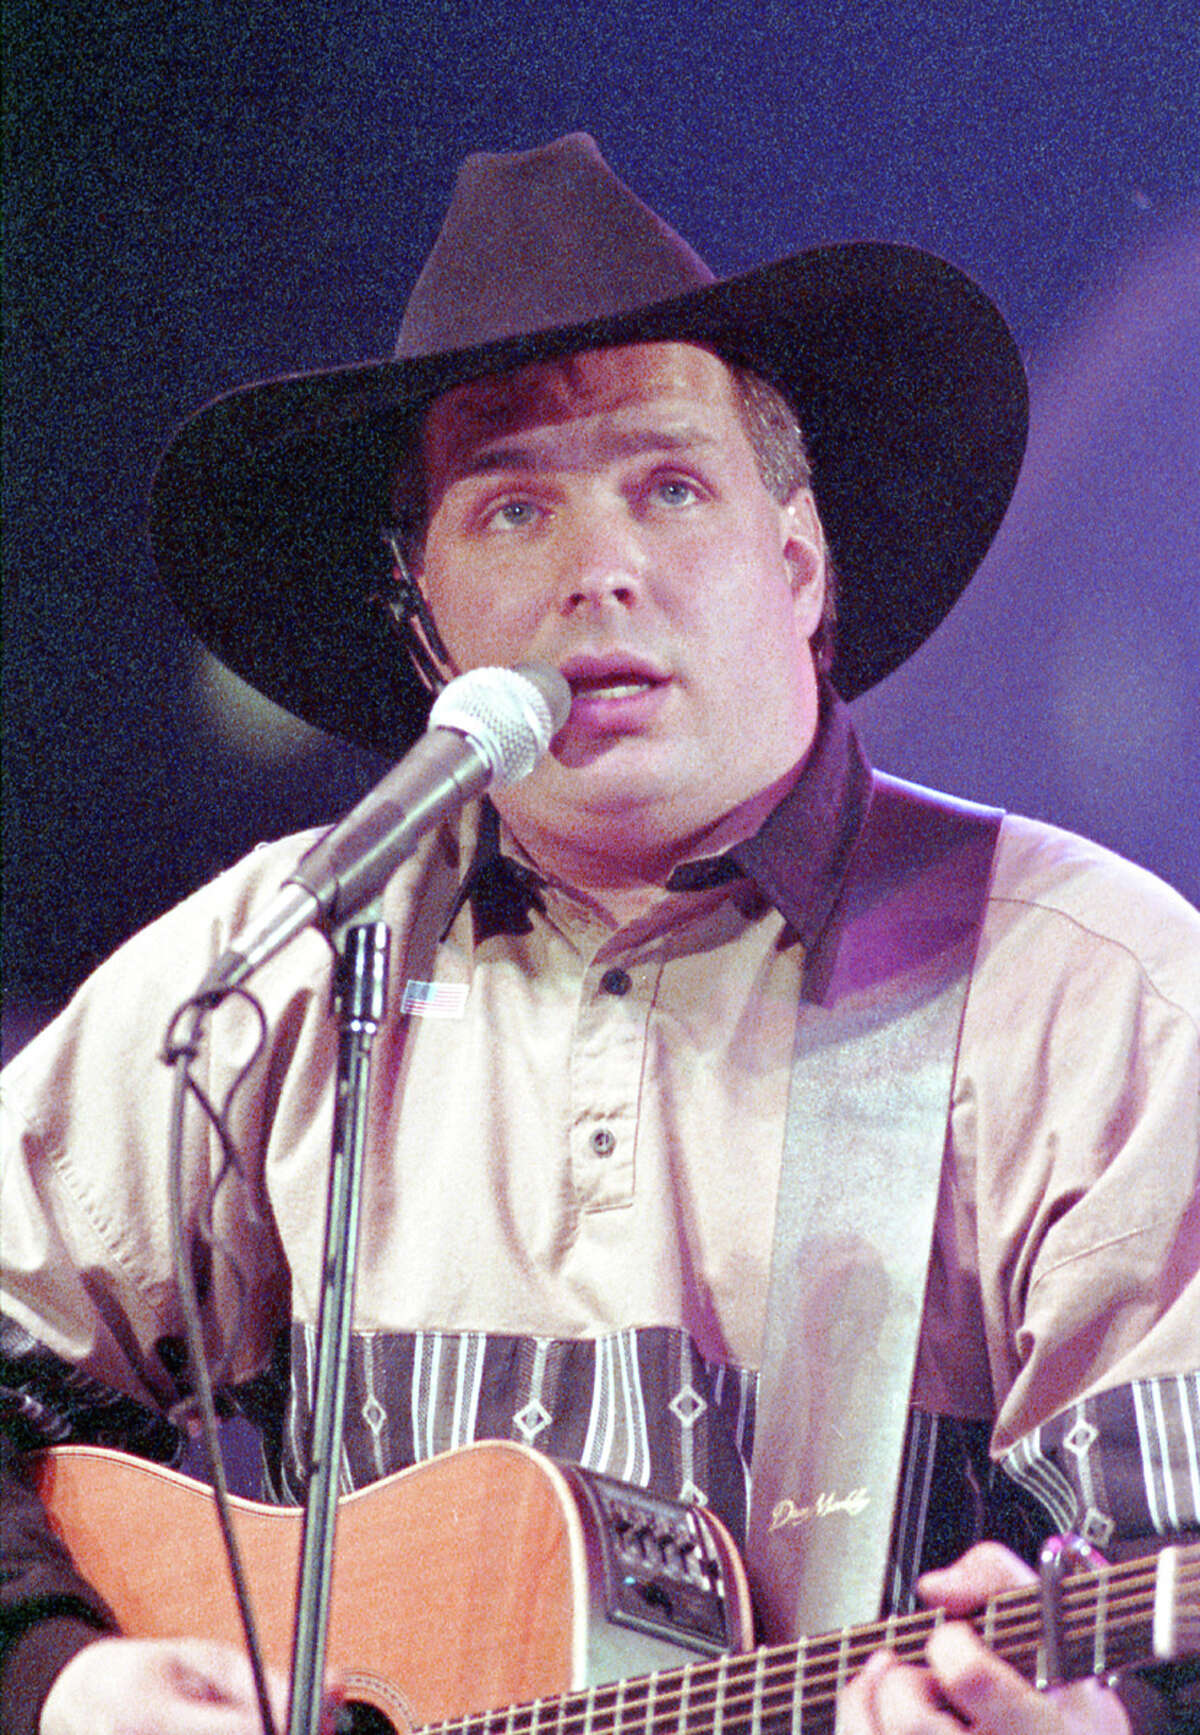 Garth Brooks at the Houston Livestock Show and Rodeo, Feb. 21, 1991, in the Astrodome.